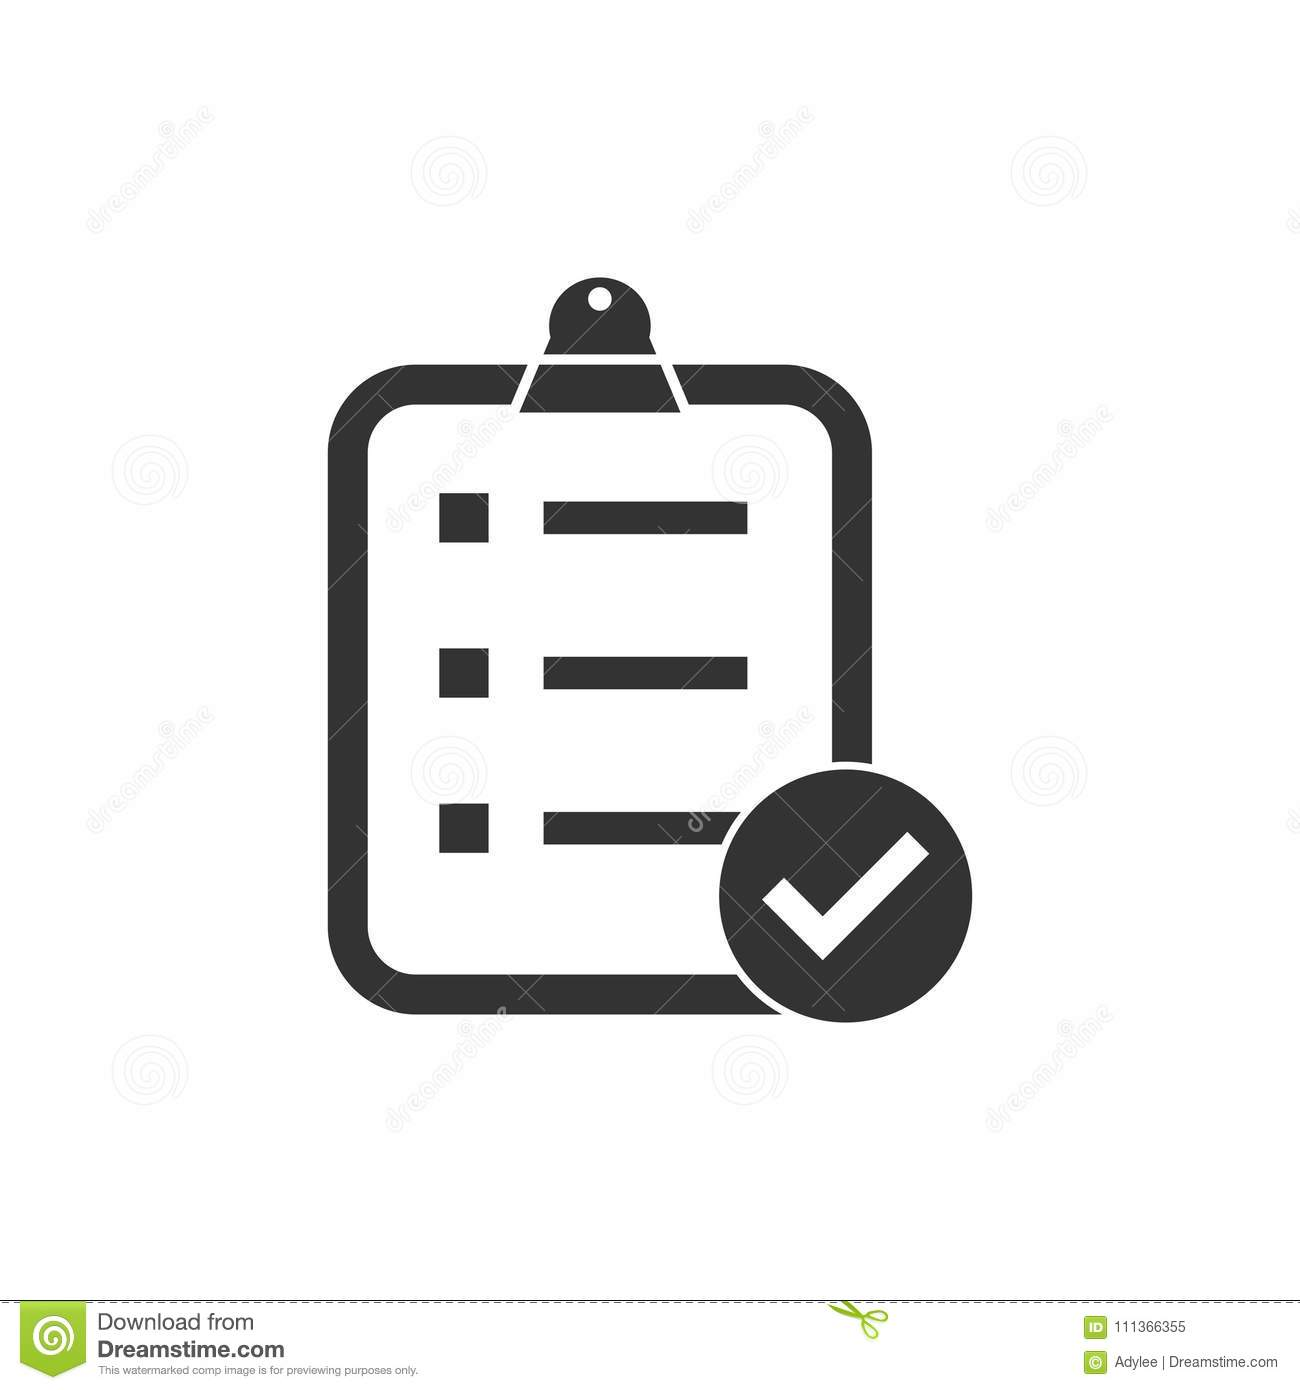 Survey icon stock image. Illustration of examination.